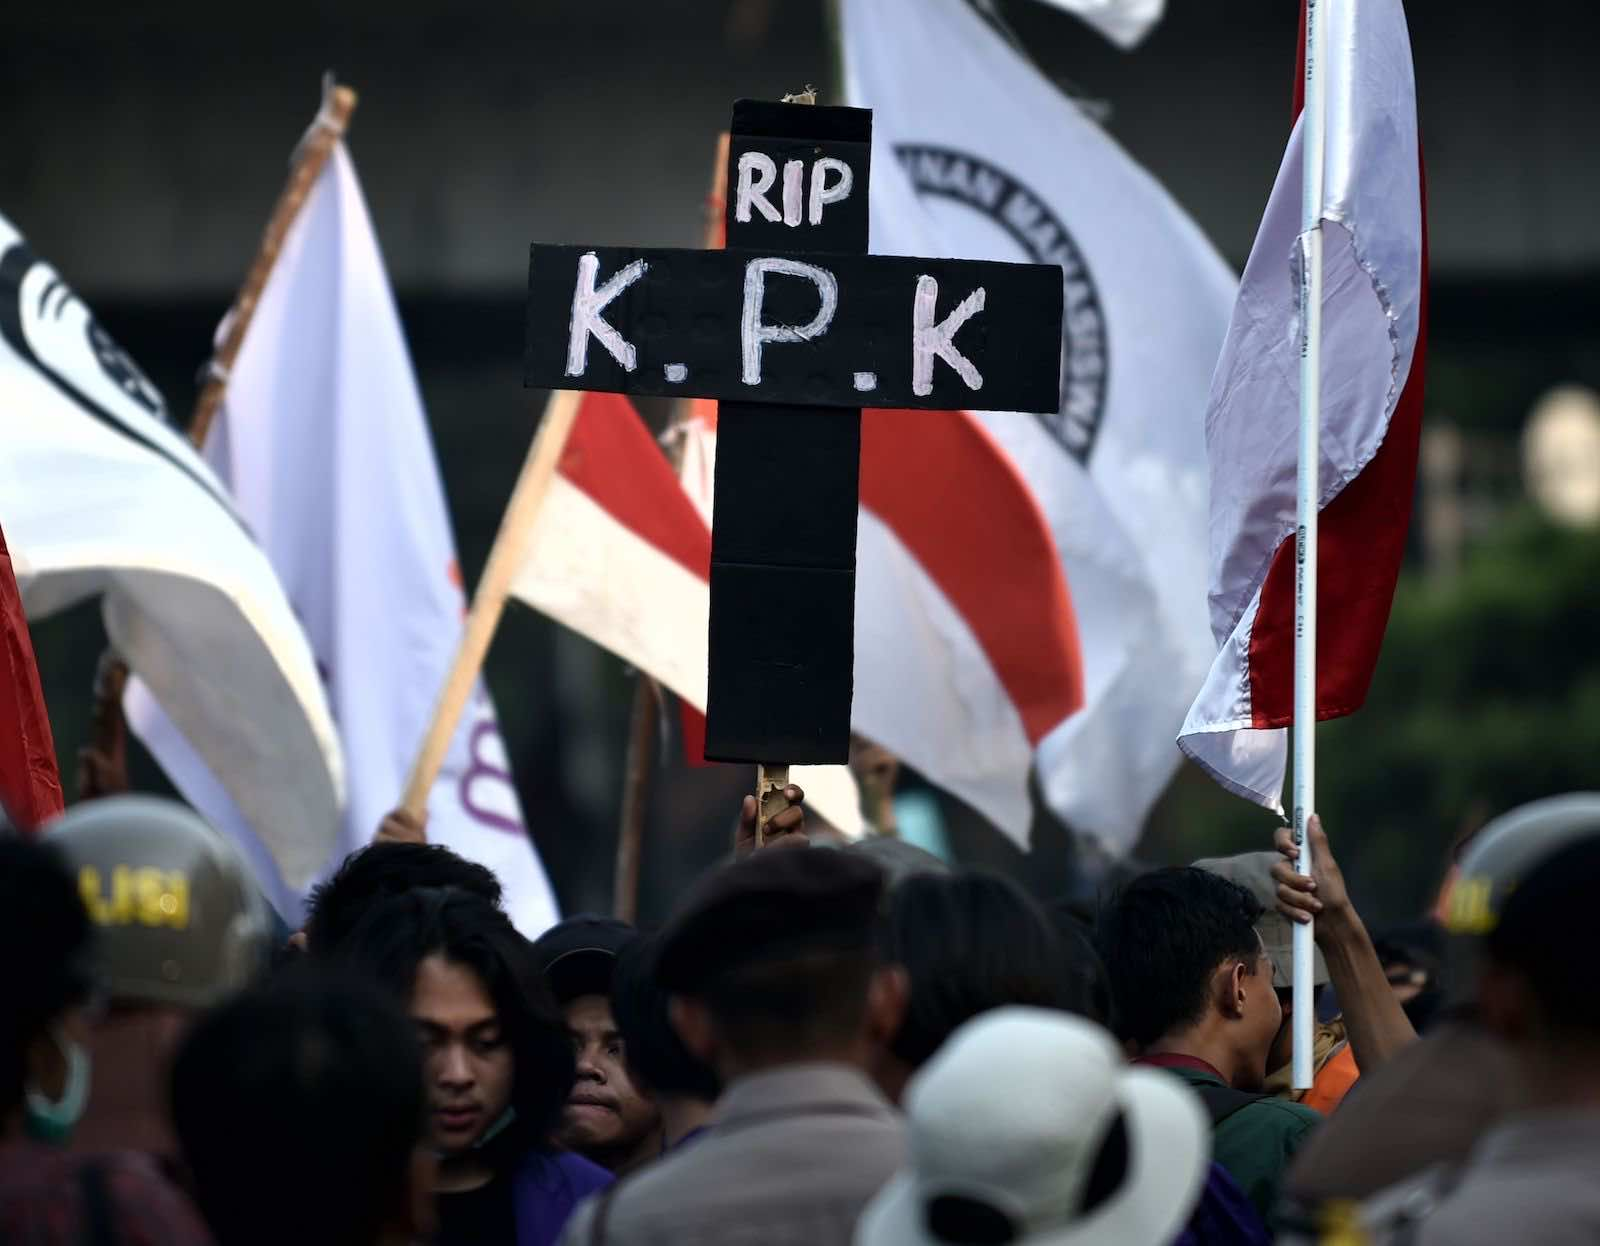 """Demonstrations against proposed legislative changes in 2019 to anti-corruption laws: the latest concern focuses on a so-called """"civics"""" test for staff at the Corruption Eradication Commission, or KPK (Bay Ismoyo/AFP via Getty Images)"""